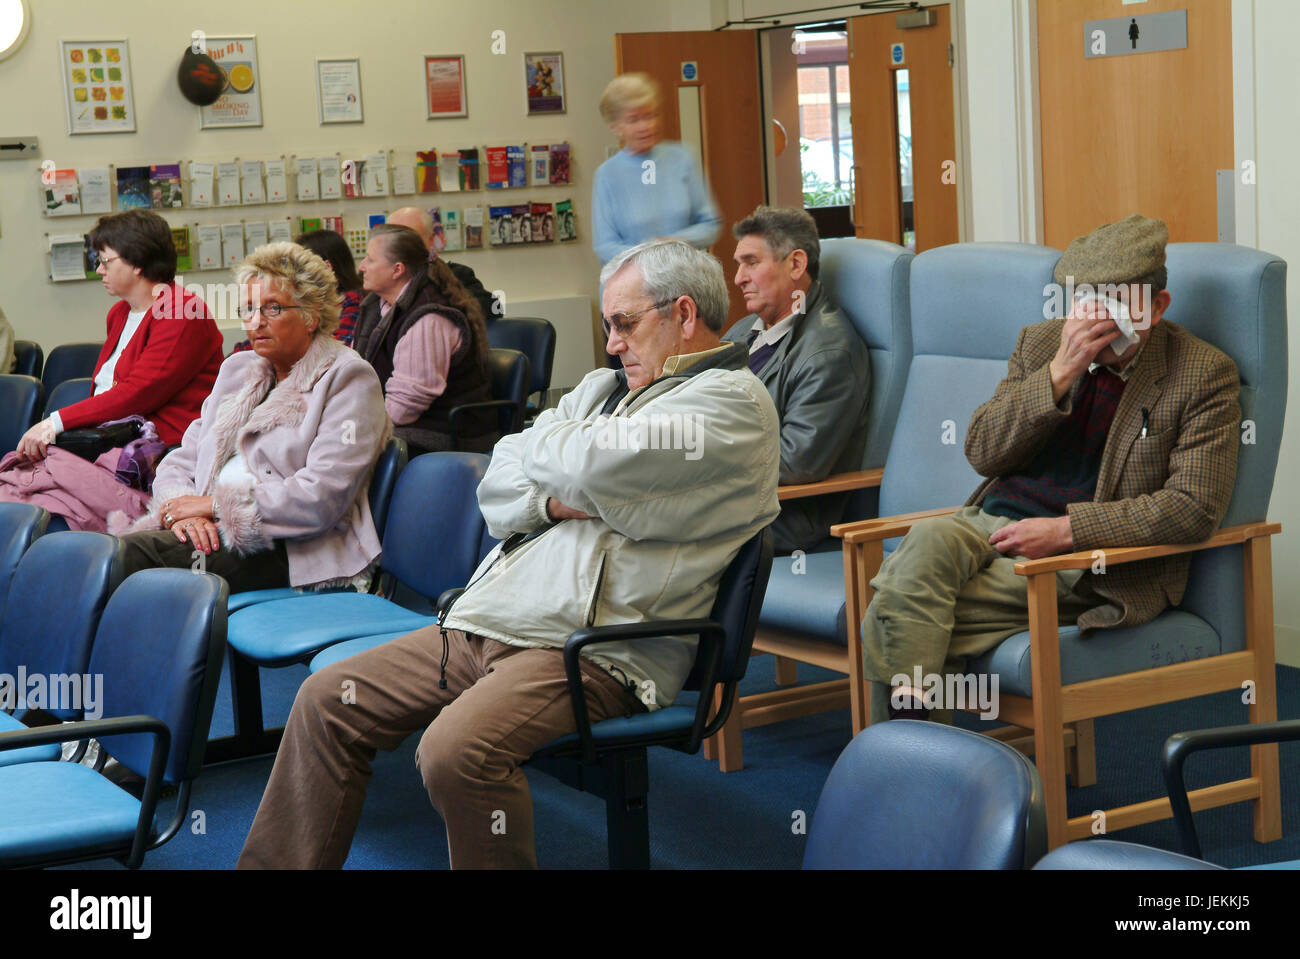 Waiting room in the NHS (National Health Service) East Quay